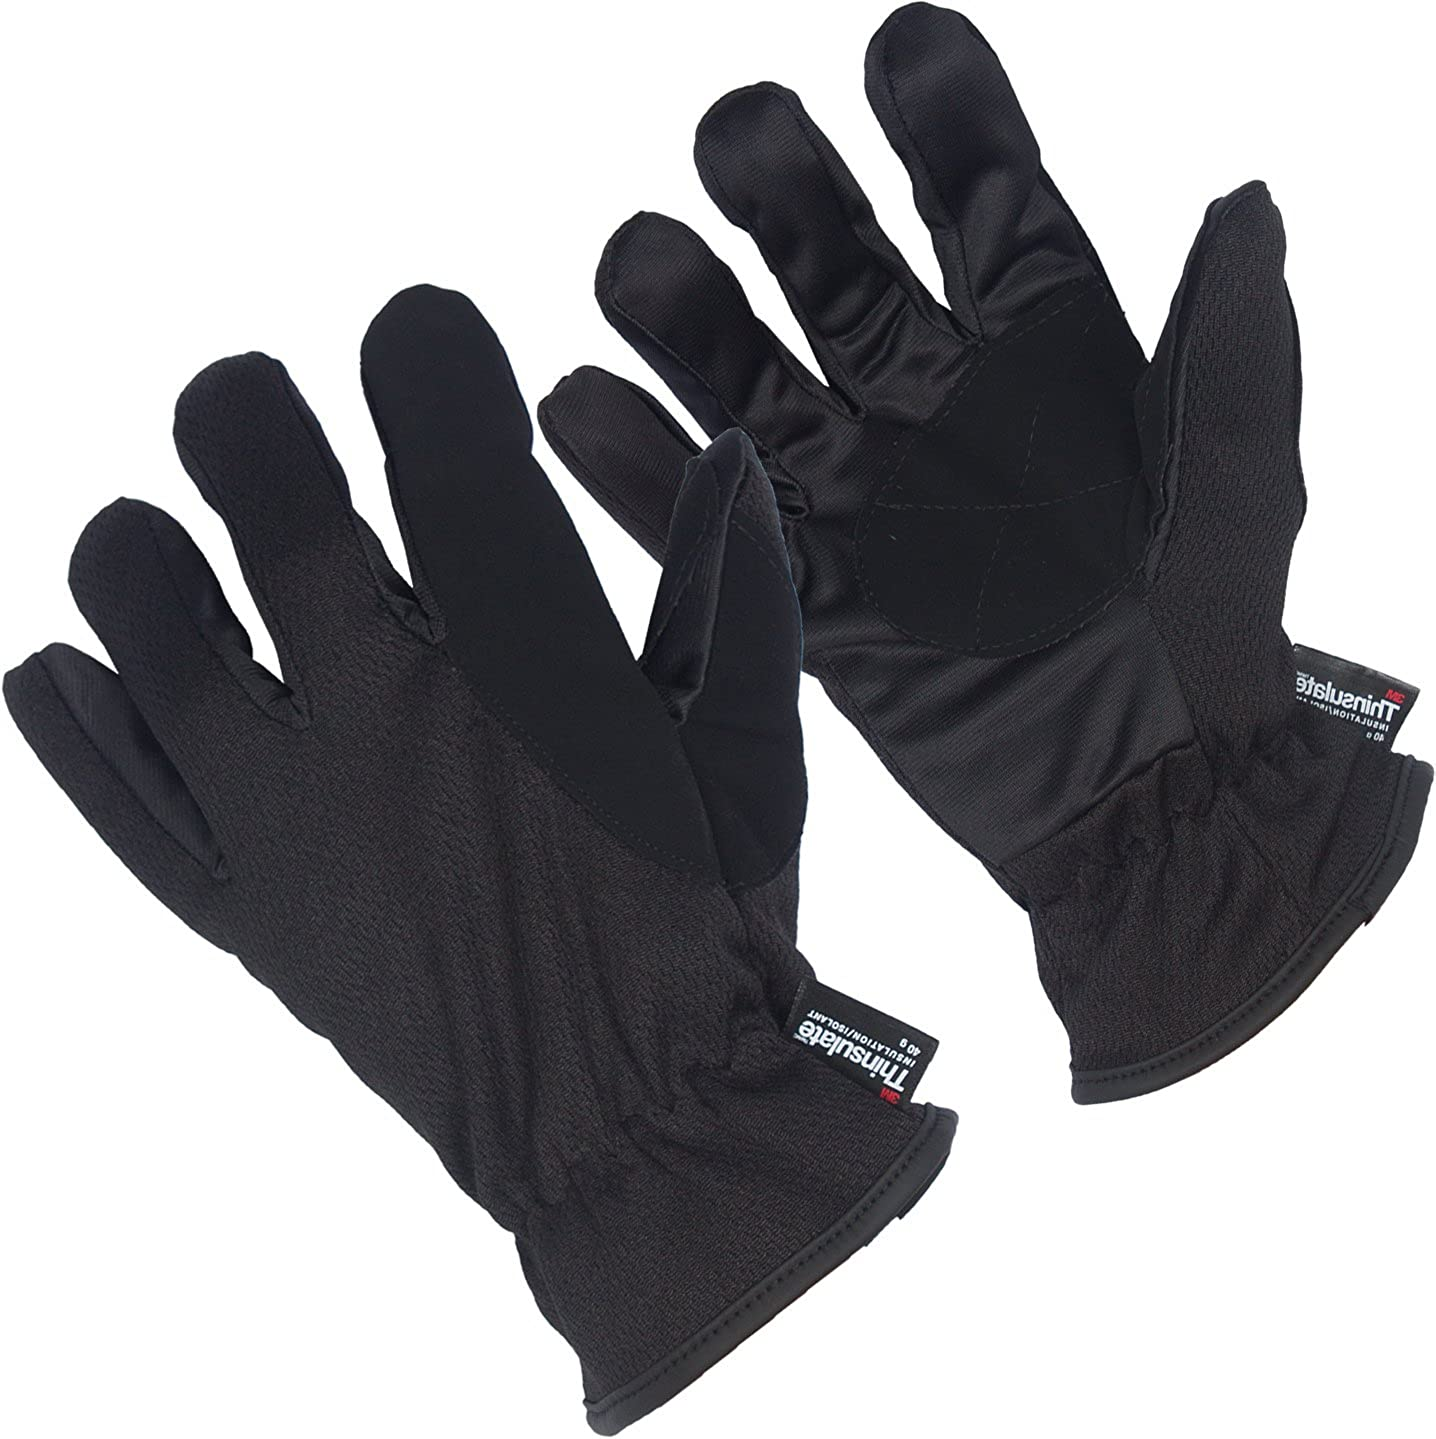 DRY77 Cold Weather Gloves...